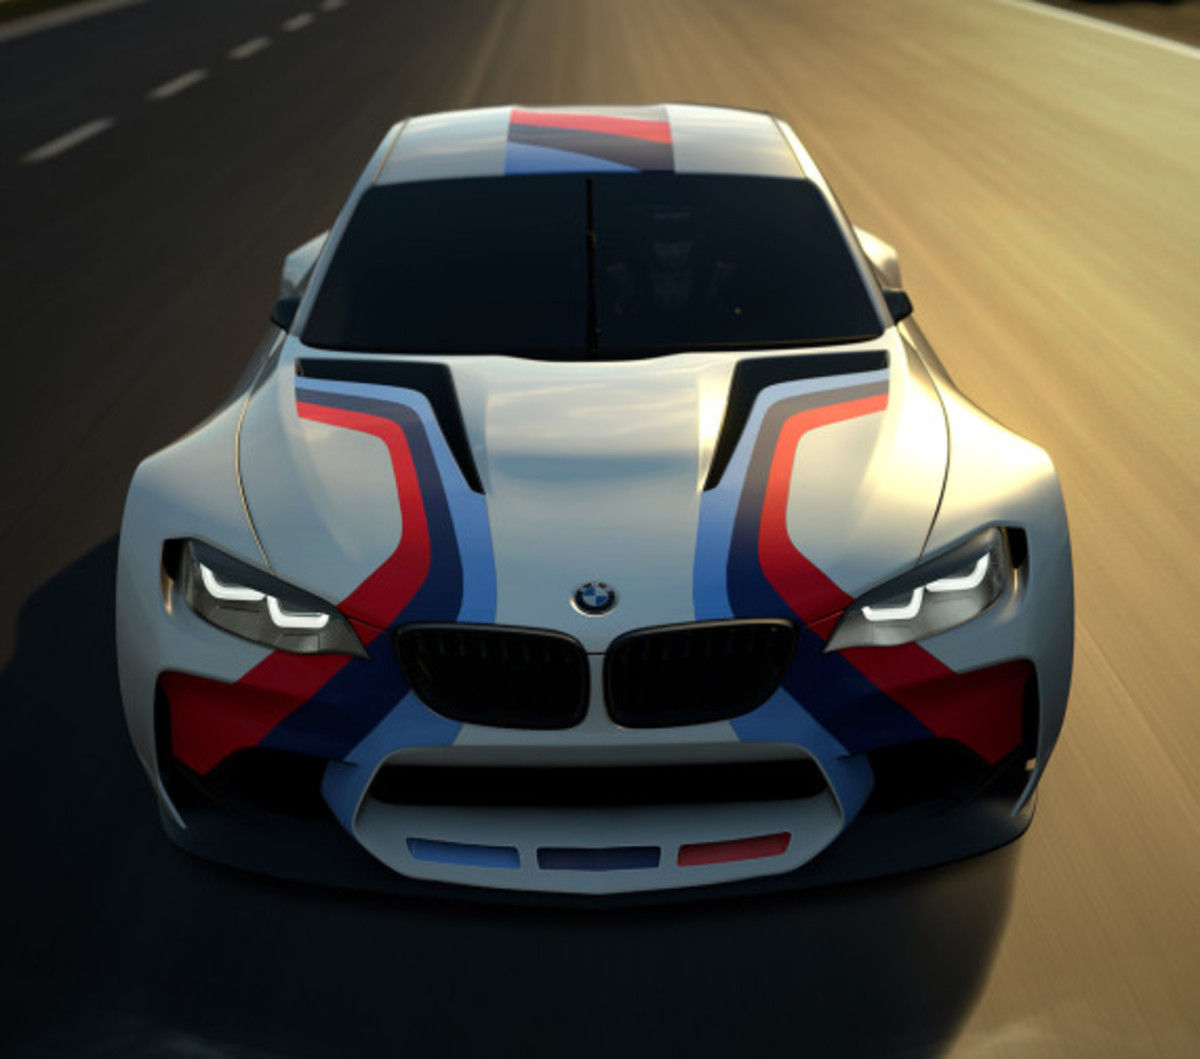 BMW Vision Gran Turismo | For Sony PlayStation 4 and Gran Turismo 6 - 16